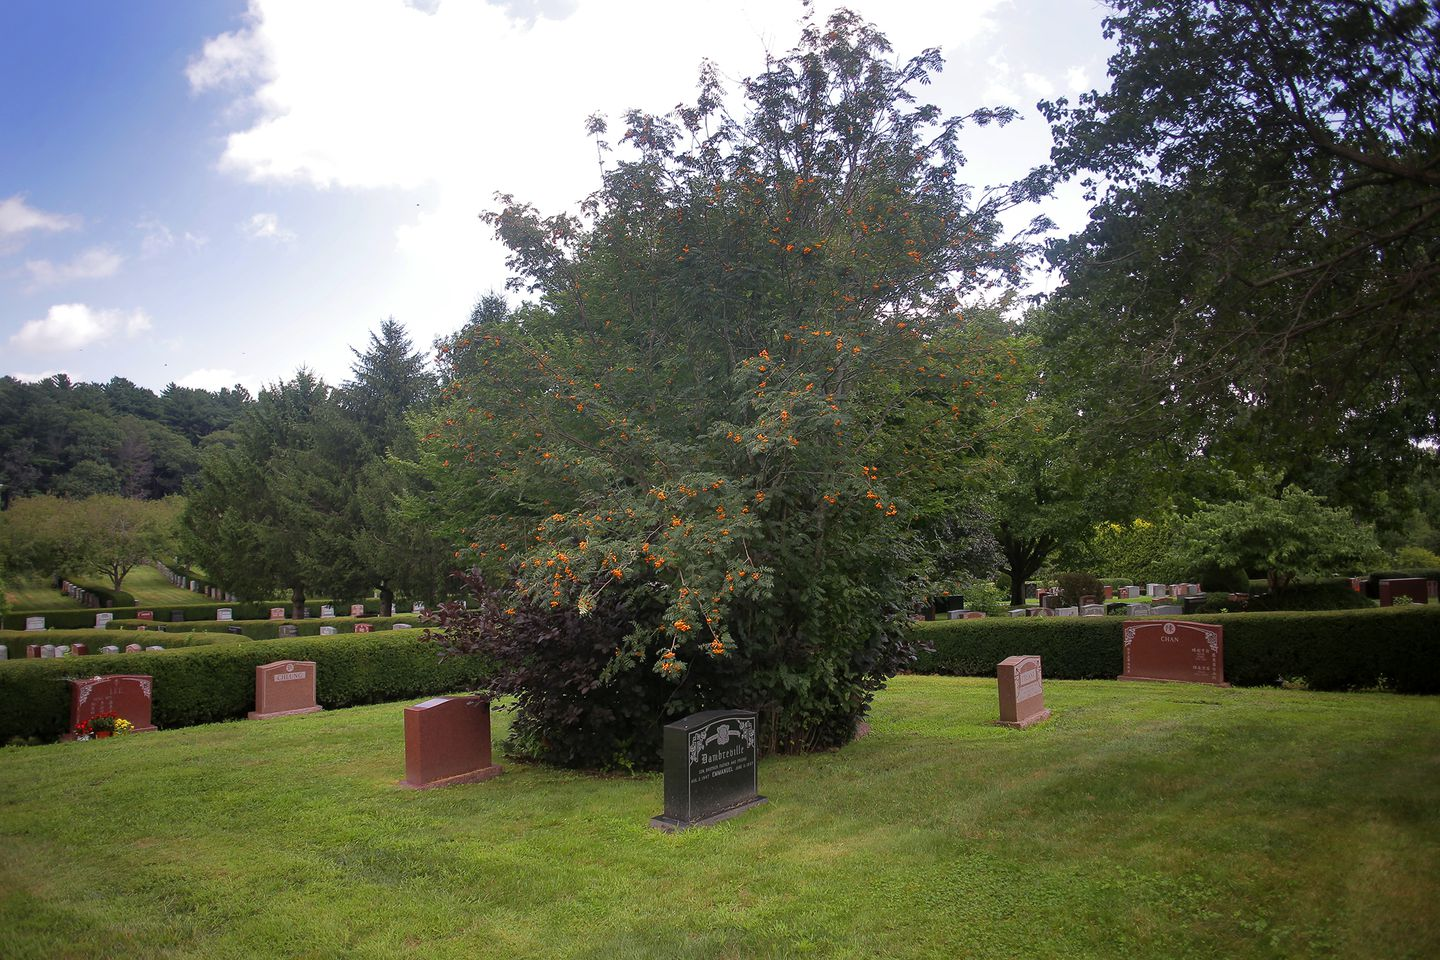 Reggie Lewis's grave, which is between the two markers near the bush, remains without a headstone.